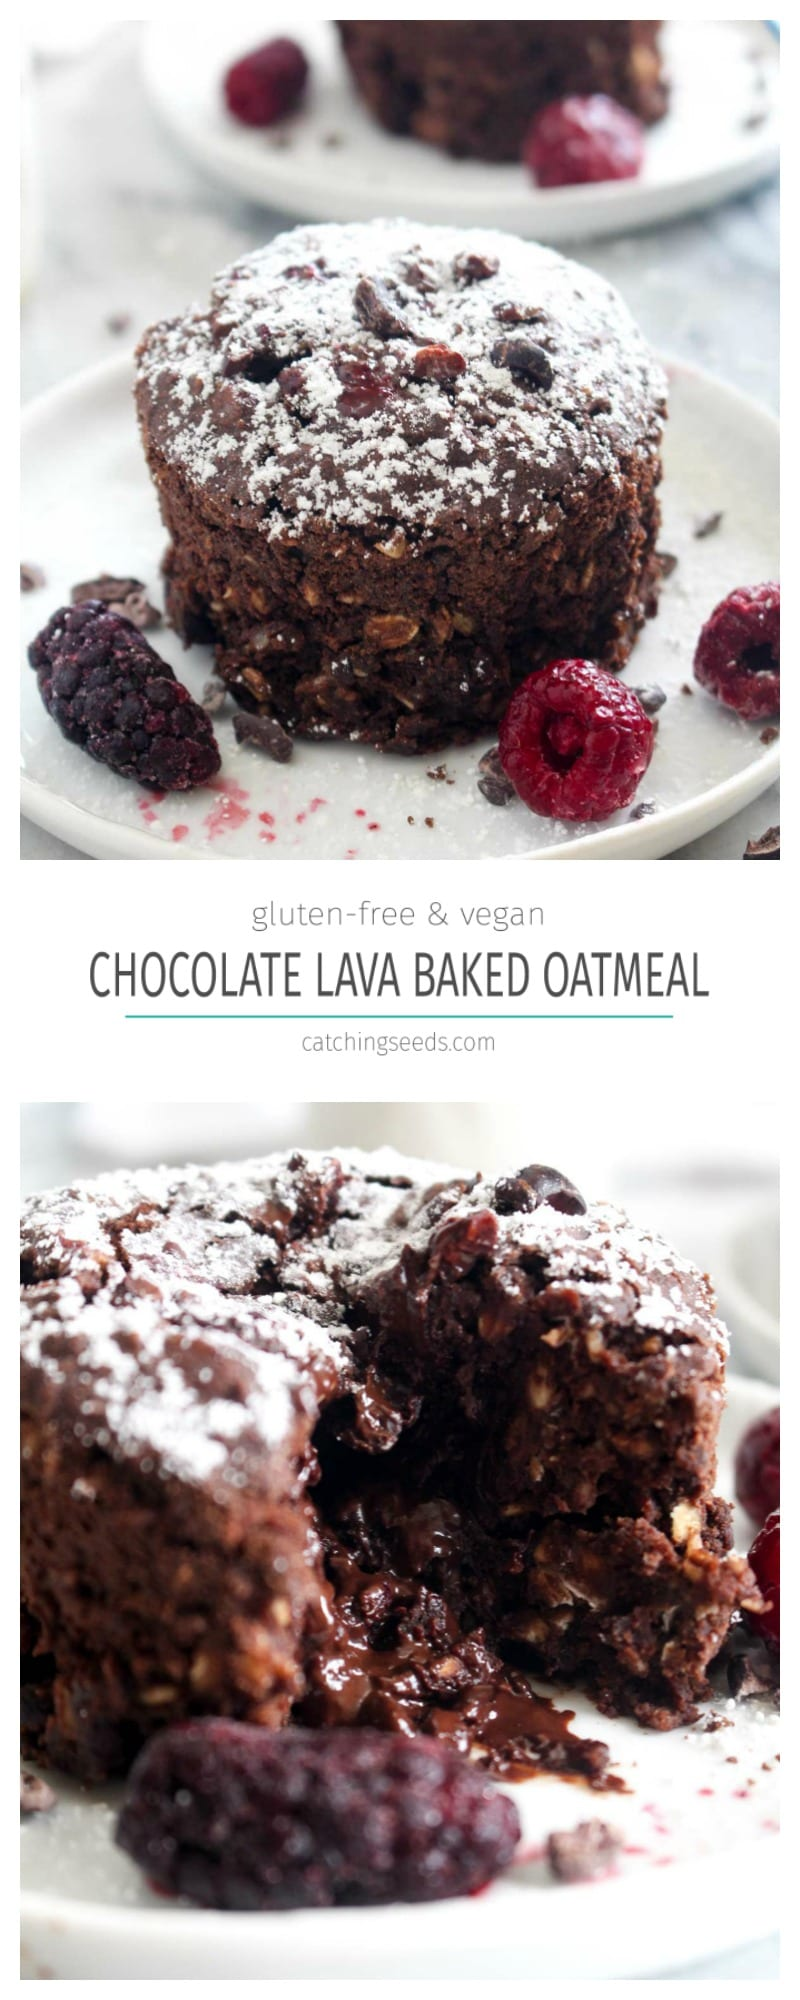 This Chocolate Lava Baked Oatmeal is a rich, chocolate-y breakfast cake that is secretly healthy and made with whole food ingredients! This cake is both gluten-free and vegan. | CatchingSeeds.com